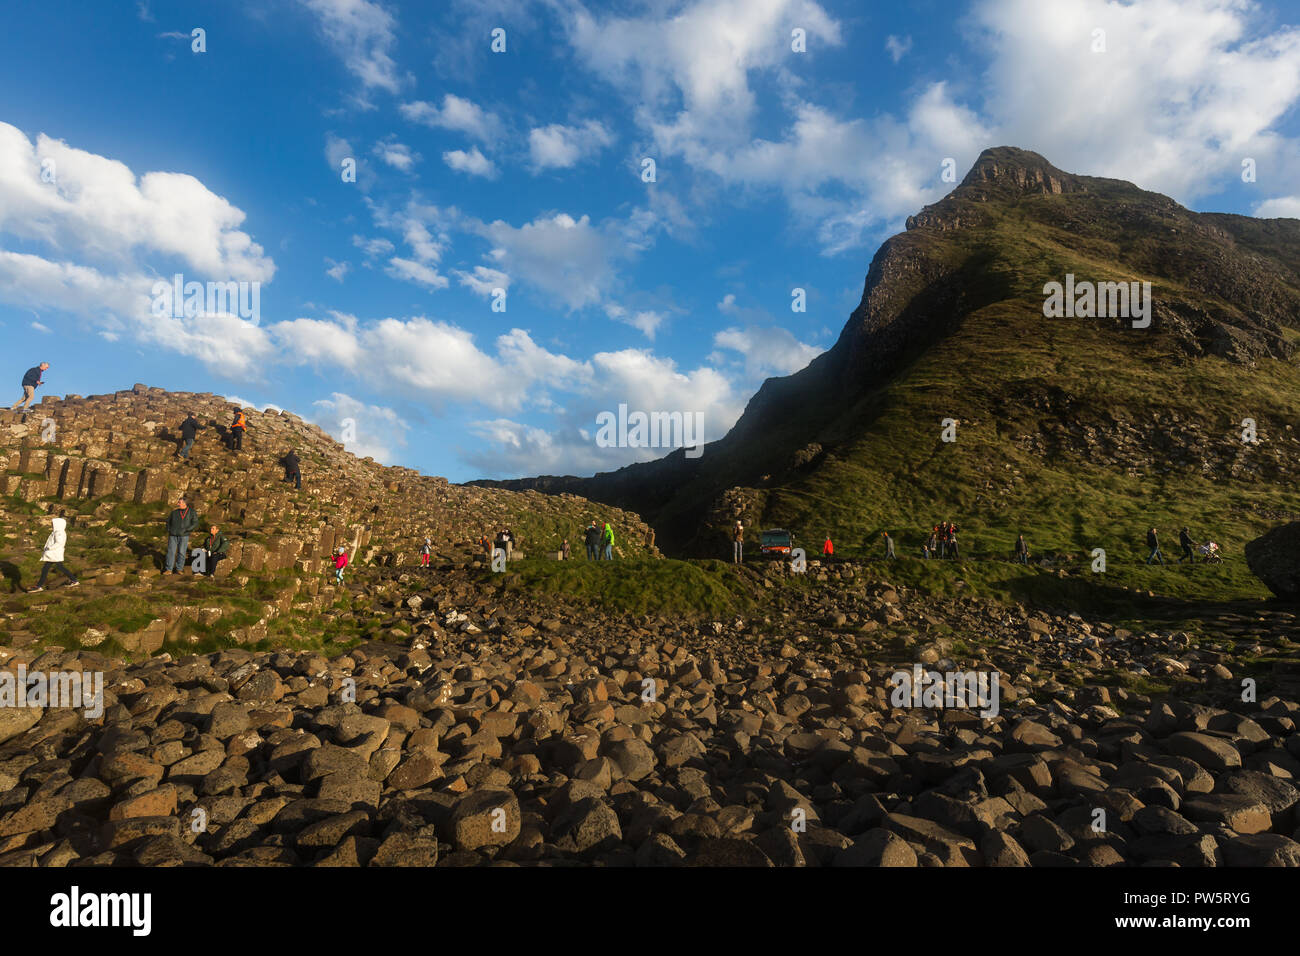 Giants Causeway, County Antrim, N.Ireland, 12th October, 2018. UK Weather: Bright sunny afternoon with strong gusts following strong winds and grey skies from Storm Callum in the morning. Tourists enjoy wonderful bright conditions at Northern Ireland's top attraction, with thousands of basalt hexagonal columns. Credit: Ian Proctor/Alamy Live News - Stock Image